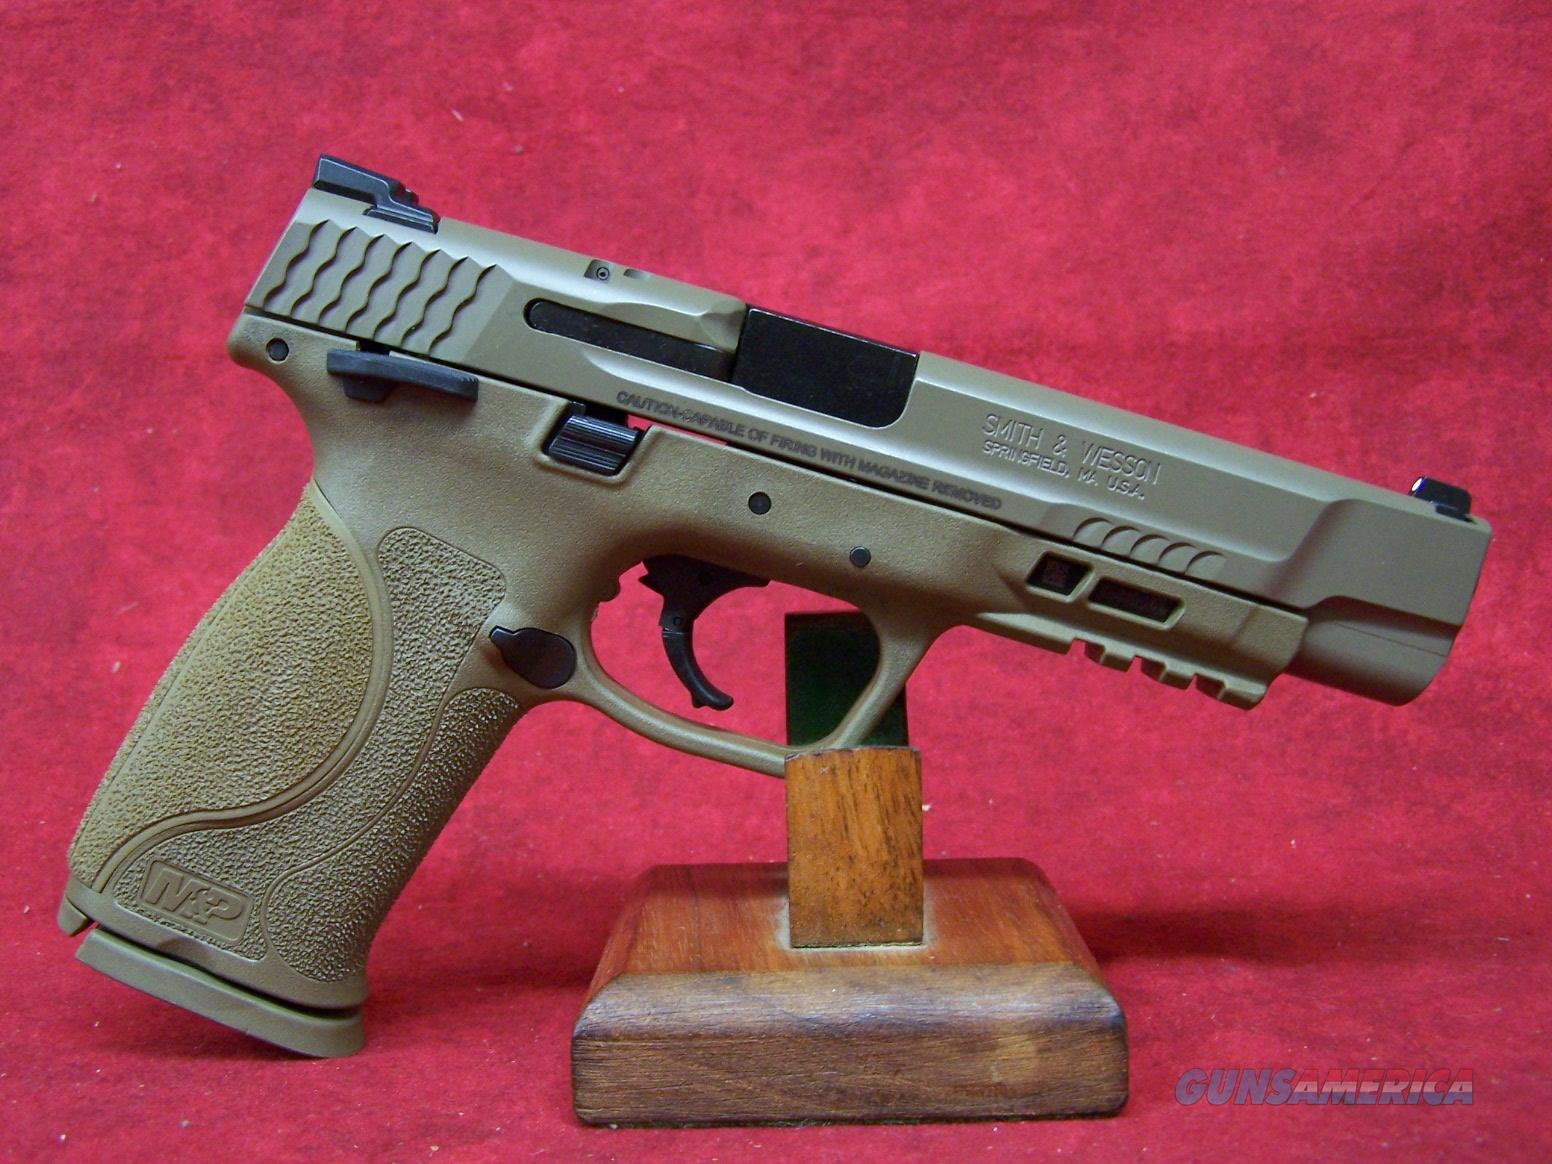 Smith & Wesson M&P40 M2.0 Striker Fire .40S&W 4.25 Inch Barrel (11595)  Guns > Pistols > Smith & Wesson Pistols - Autos > Polymer Frame